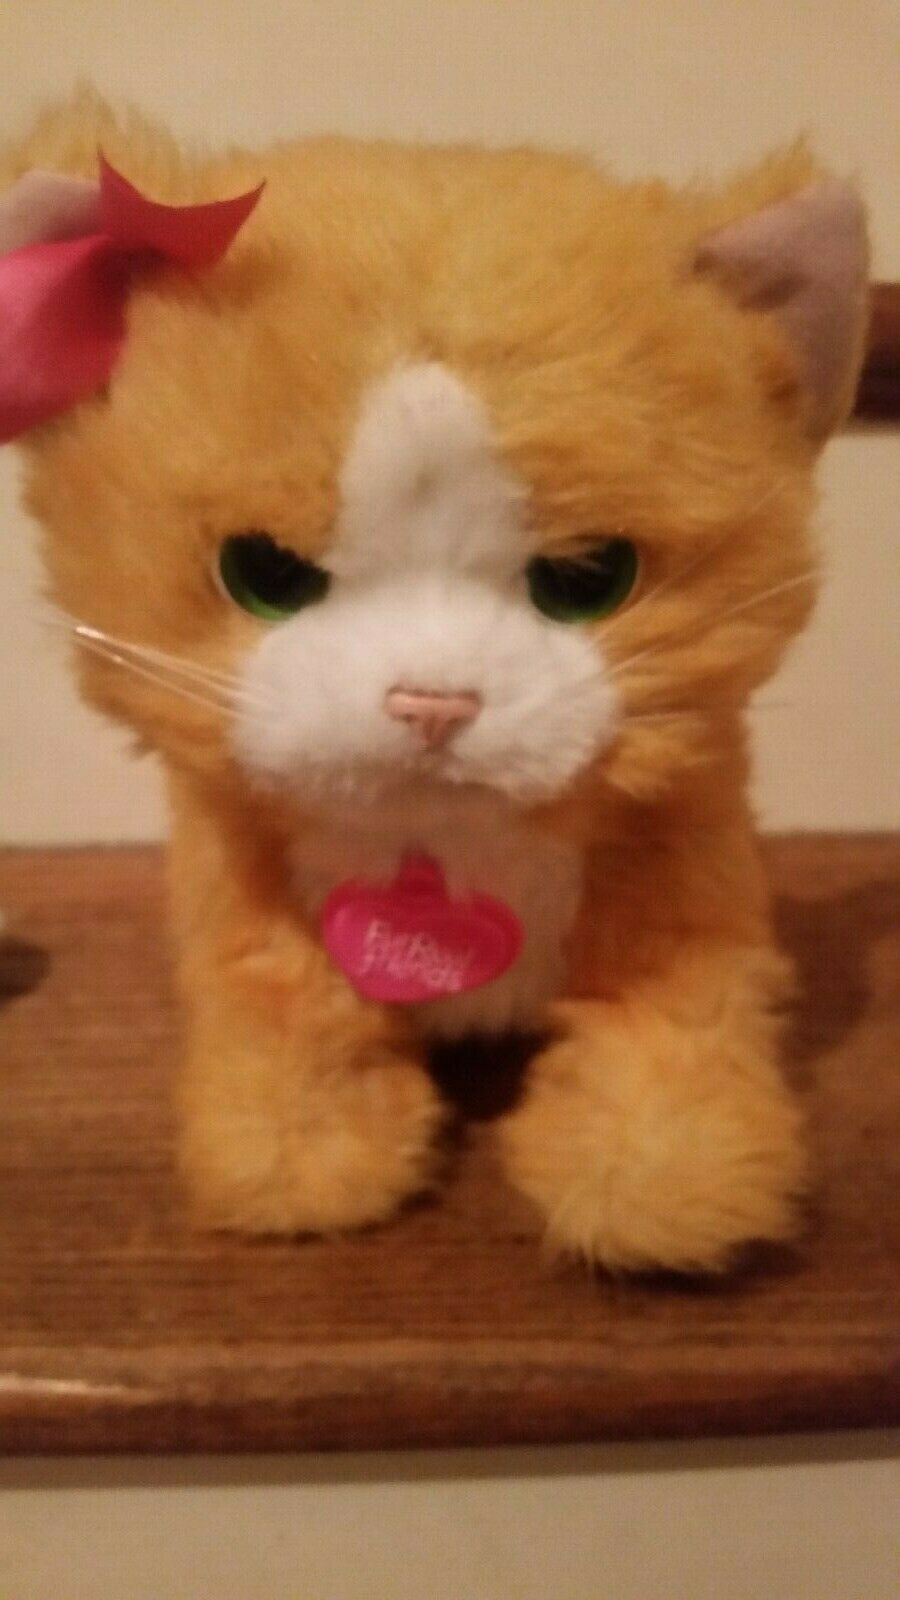 Fur Real Daisy The Animated Cat Hasbro Toy Plush Animal Interactive Cat, Realist